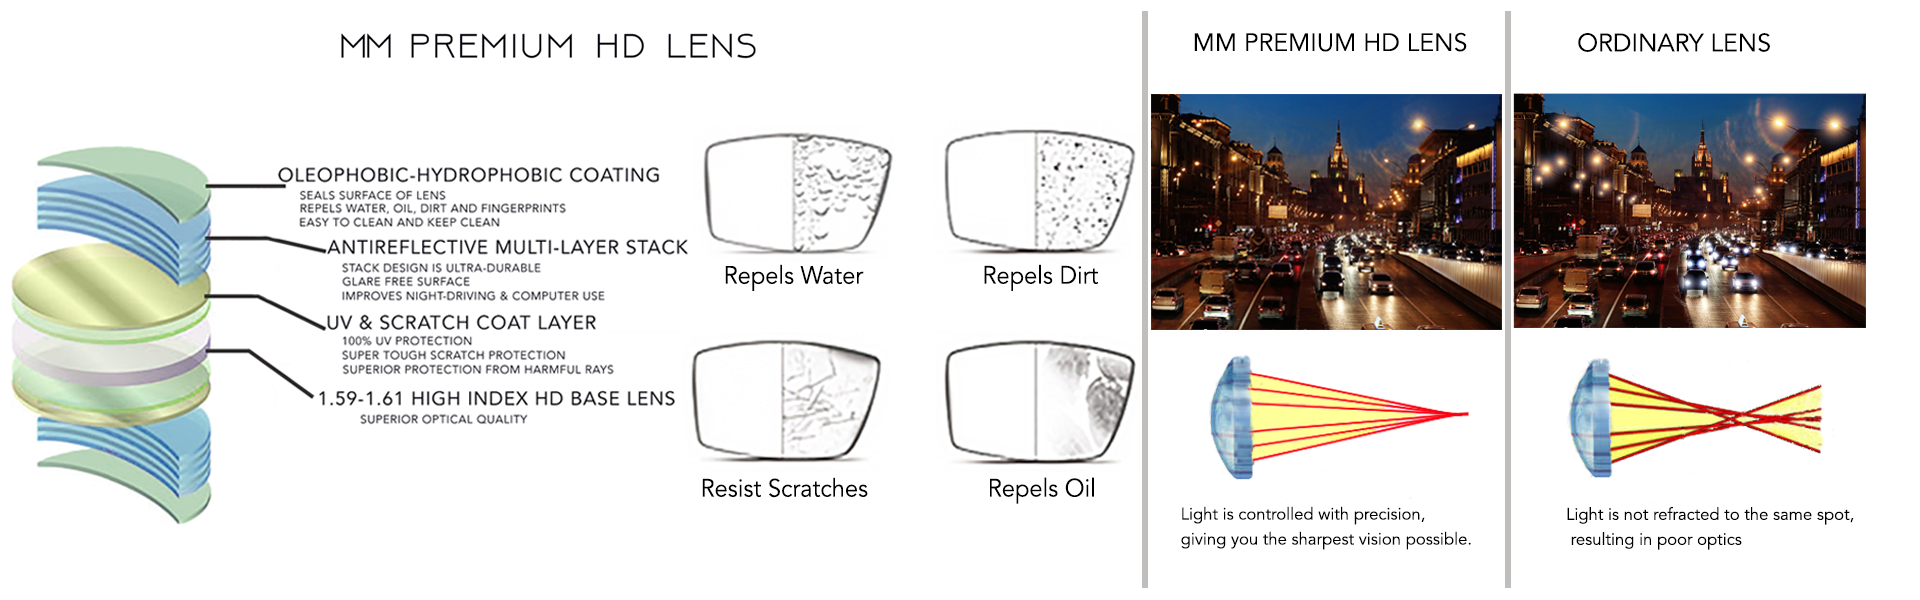 hd lenses vs regular lenses